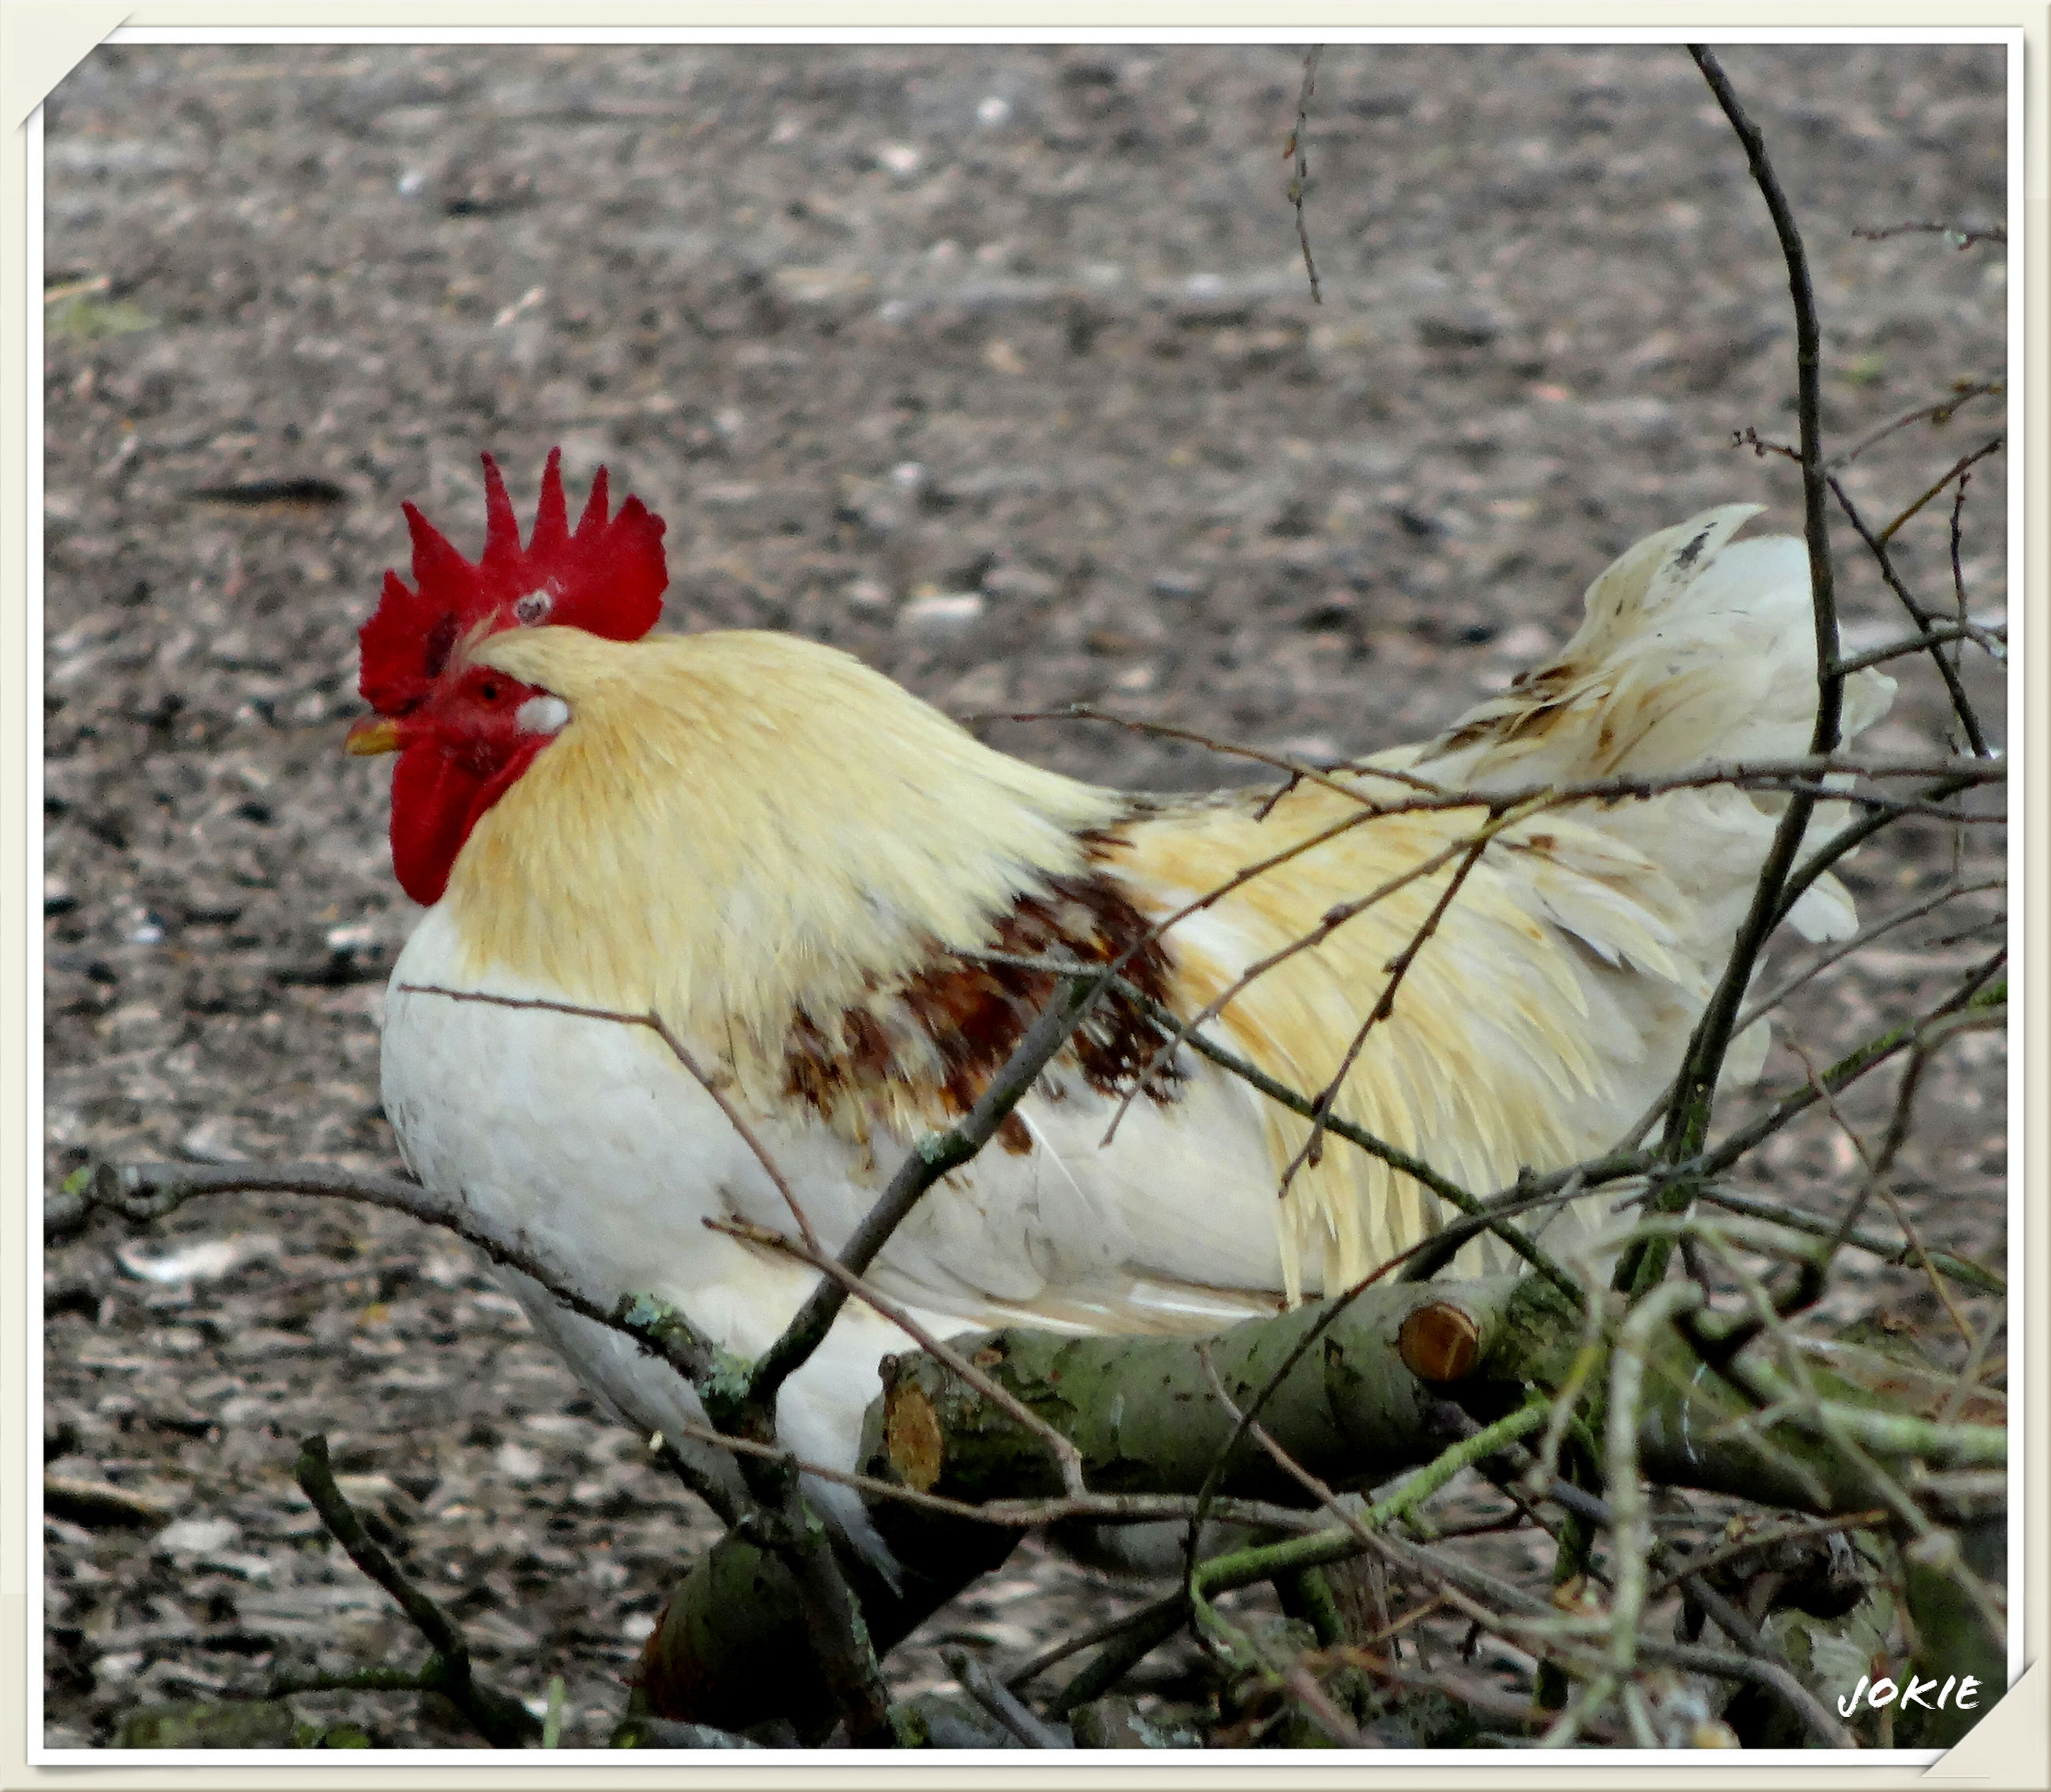 animal themes, transfer print, bird, wildlife, one animal, auto post production filter, animals in the wild, field, livestock, nature, full length, chicken - bird, grass, domestic animals, dry, no people, day, red, outdoors, close-up